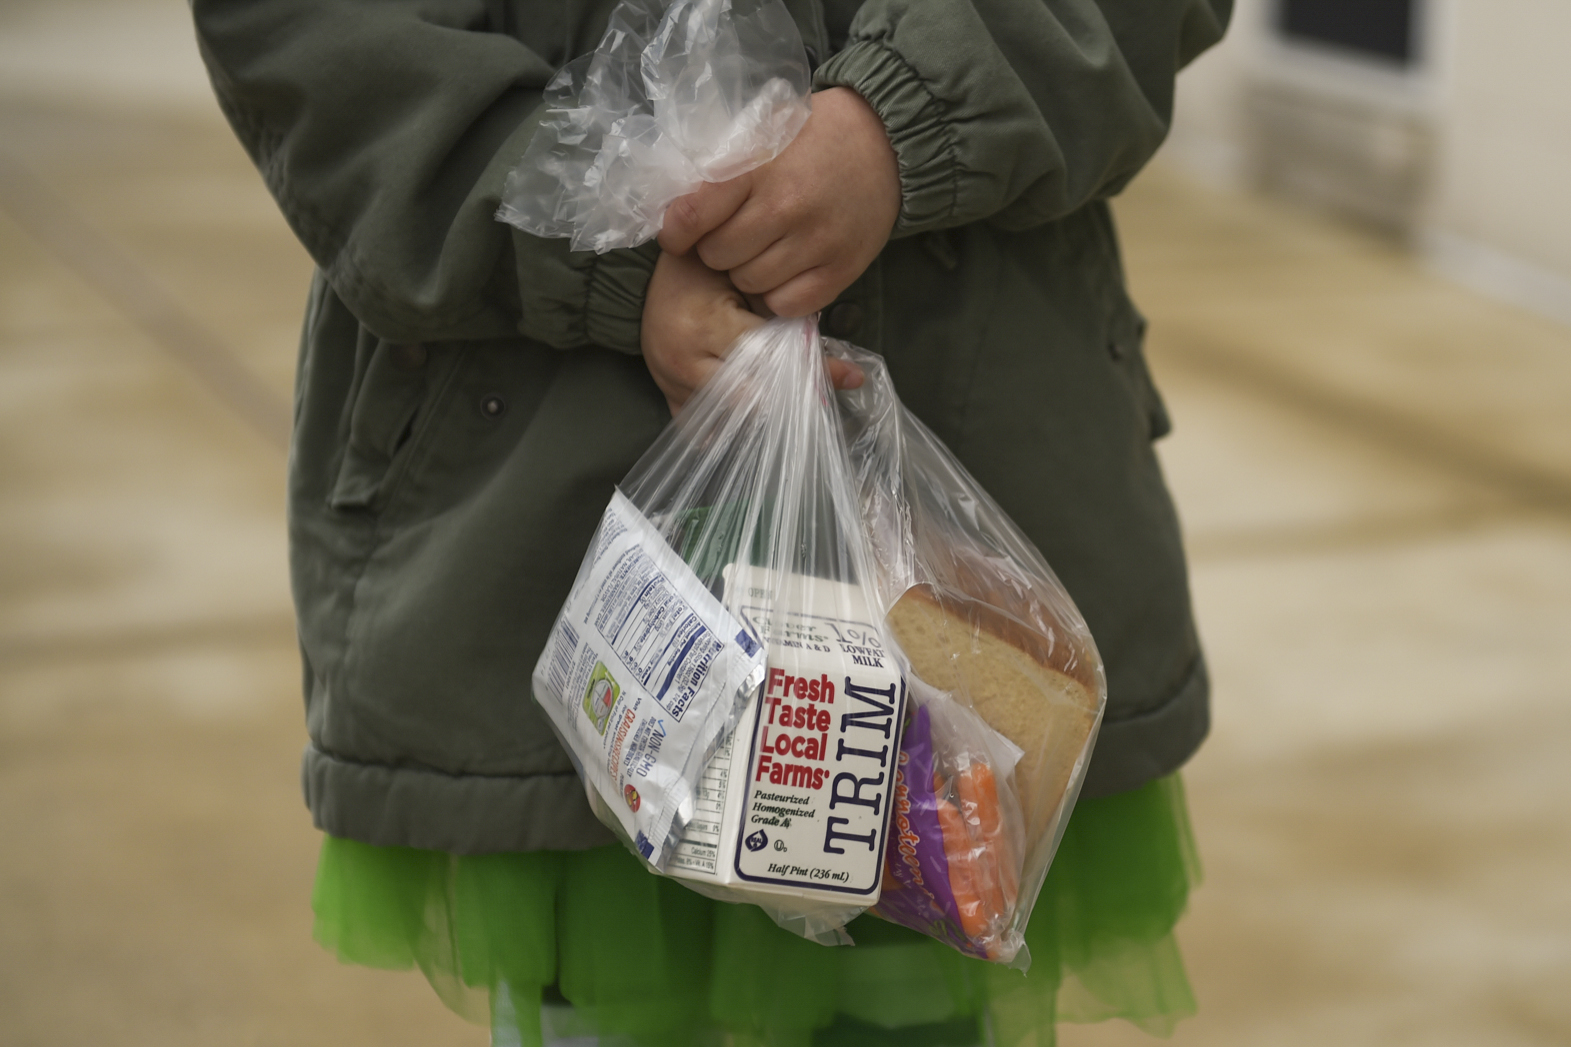 Child holds a plastic bag containing a carton of milk and other breakfast foods.